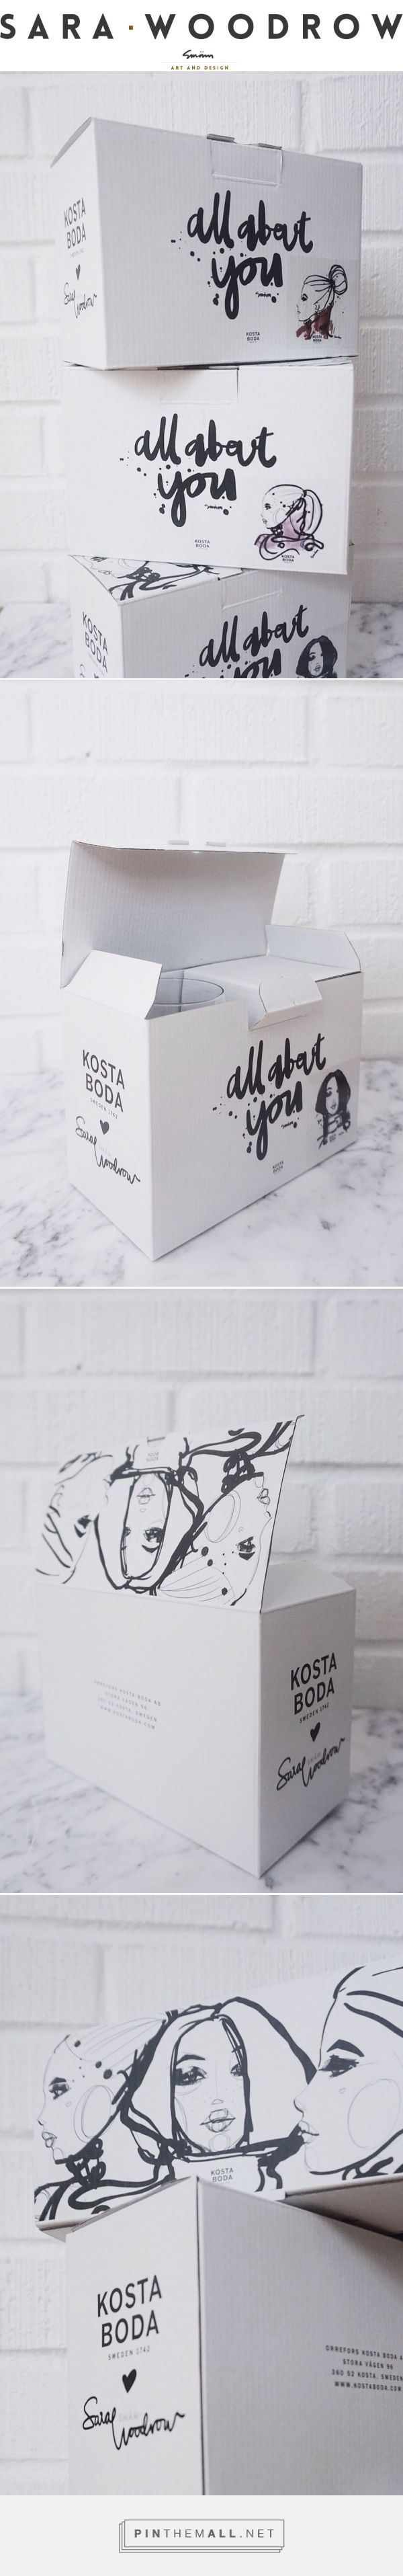 ALL ABOUT YOU – THE BOX via  S A R A • W O O D R O W curated by Packaging Diva PD. Kosta Boda glass packaging. In case you don't know the name fine glass and crystal too.